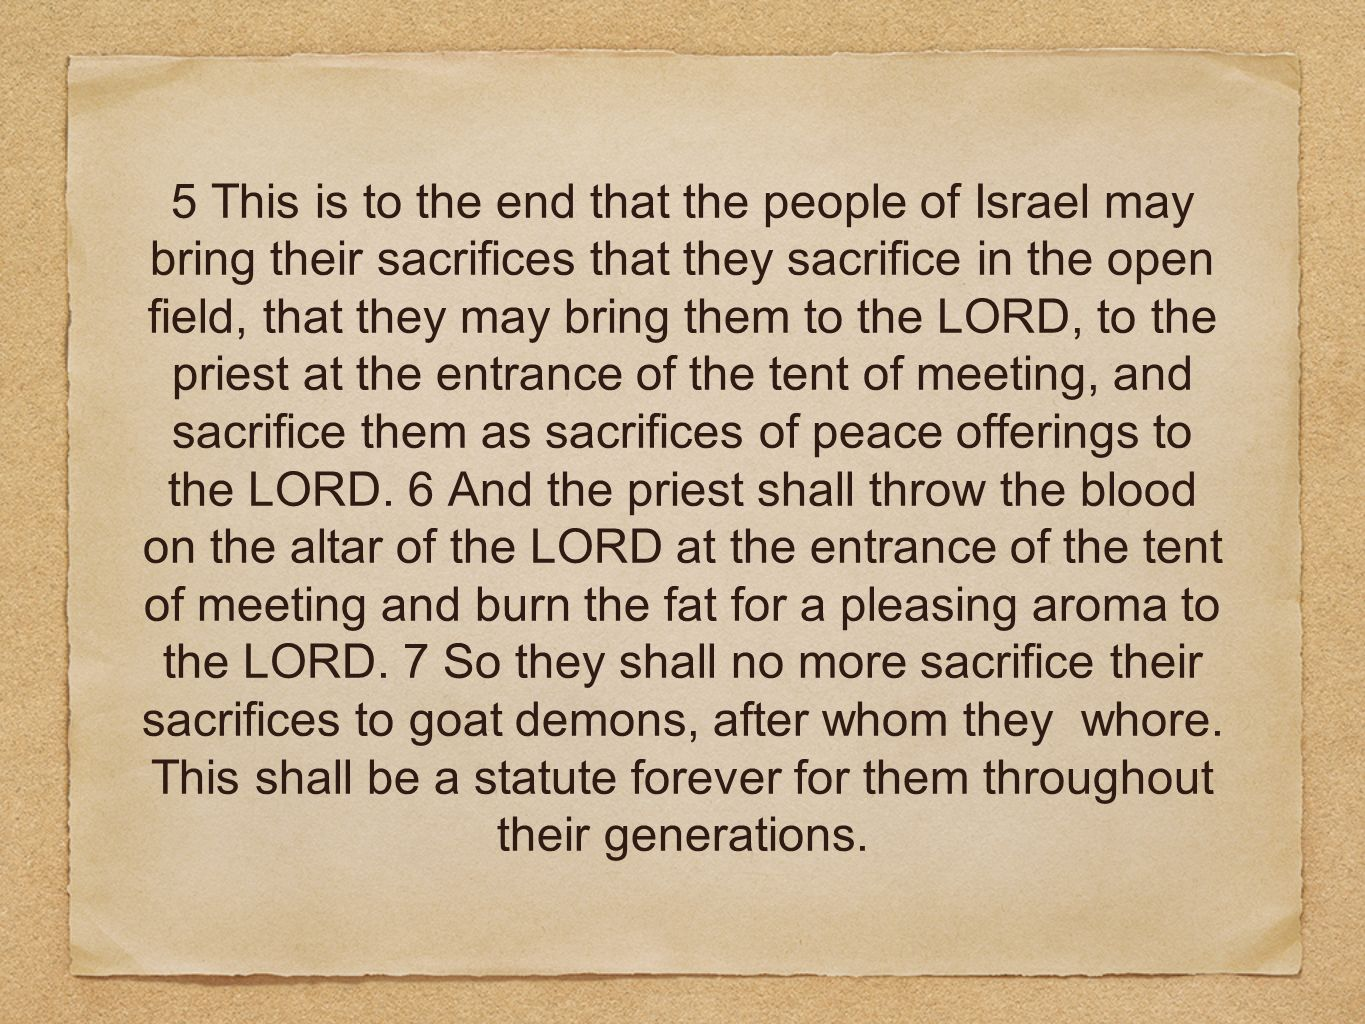 5 This is to the end that the people of Israel may bring their sacrifices that they sacrifice in the open field, that they may bring them to the LORD, to the priest at the entrance of the tent of meeting, and sacrifice them as sacrifices of peace offerings to the LORD.